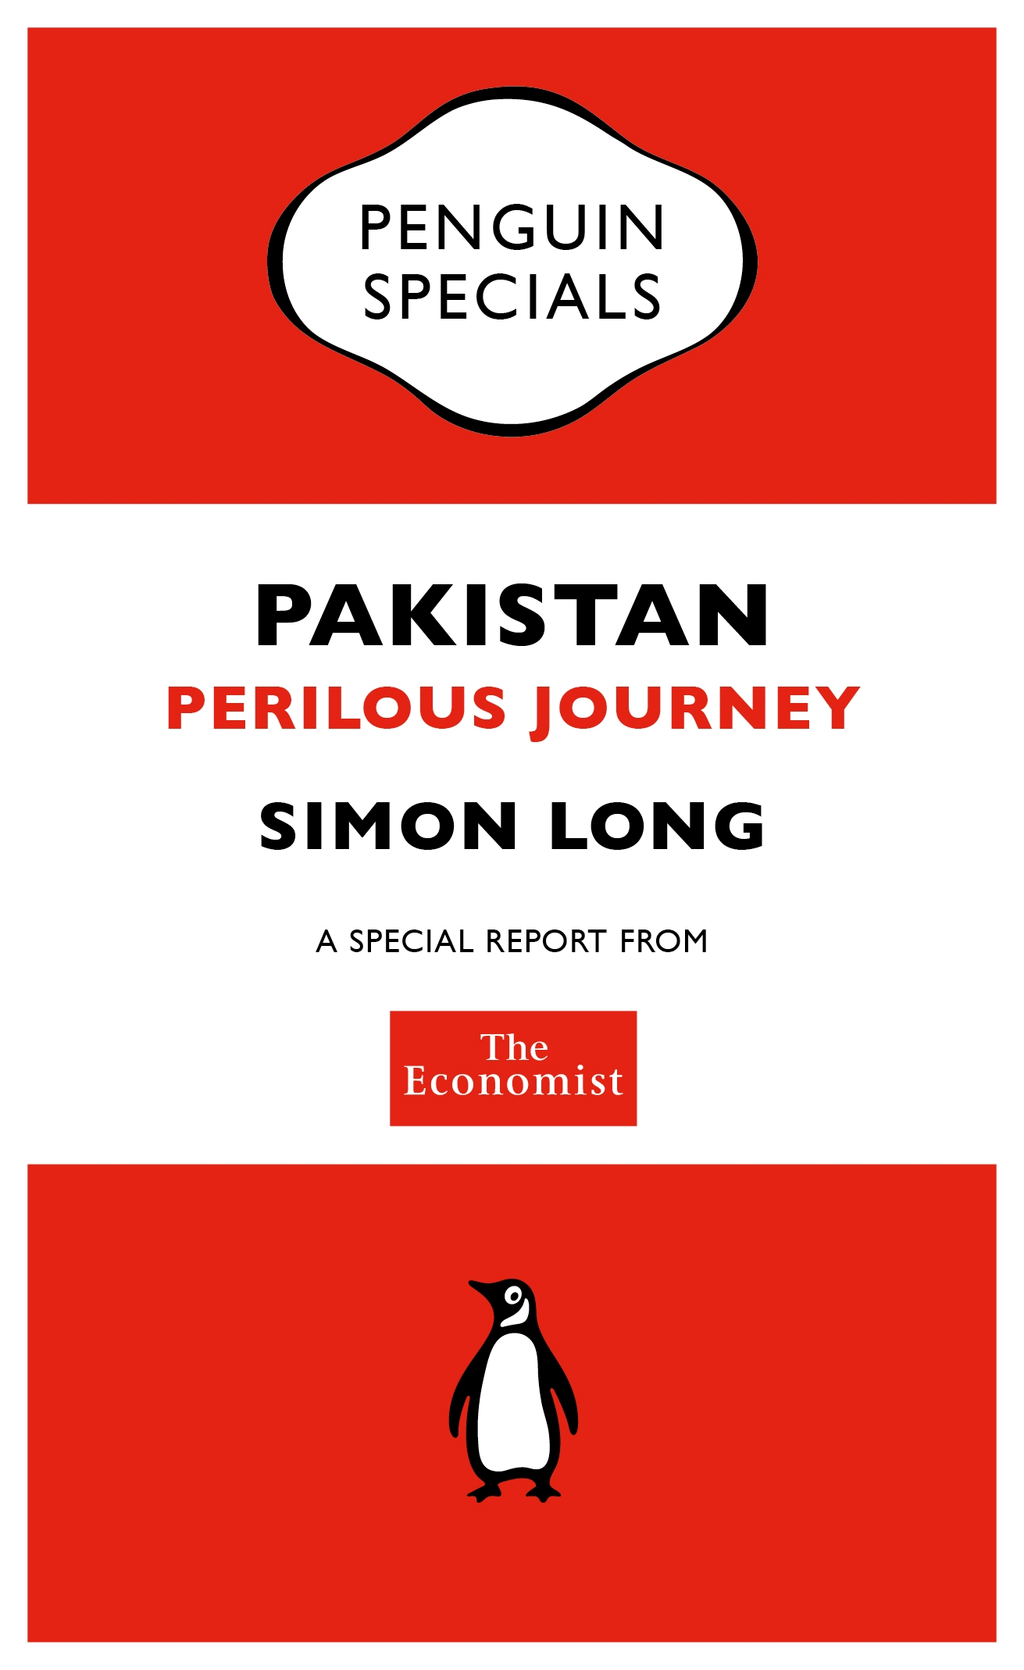 The Economist: Pakistan (Penguin Specials) By: The Economist